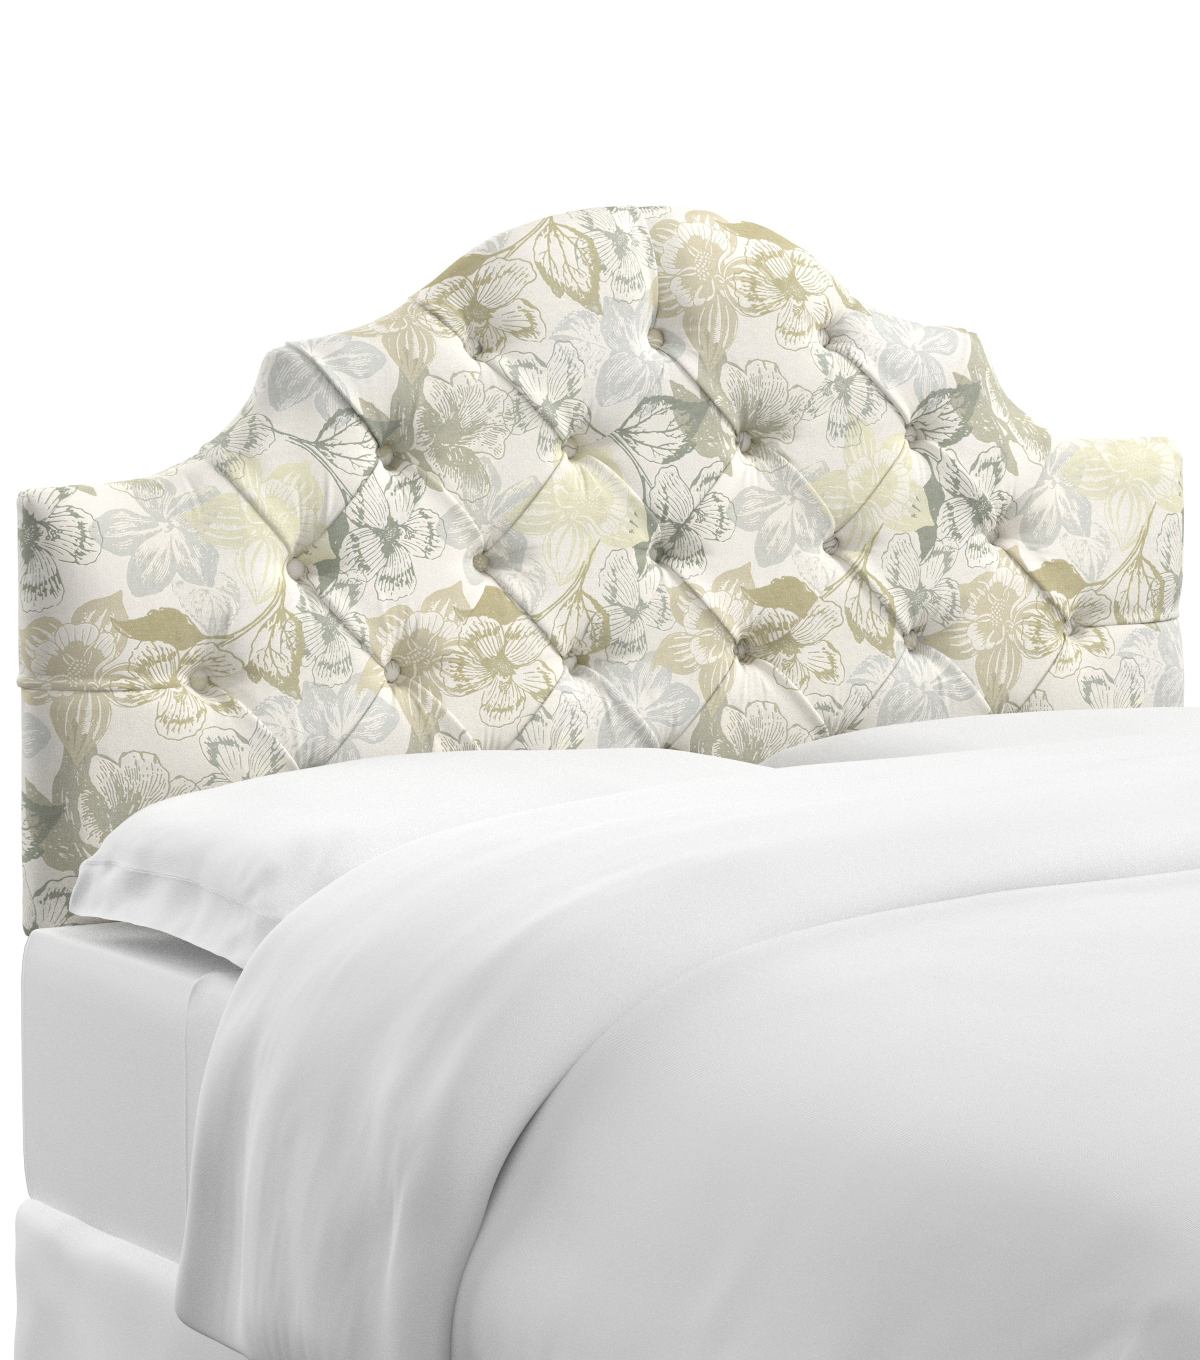 Skyline Furniture Tufted Notched Headboard-Twin, Peyton Linen